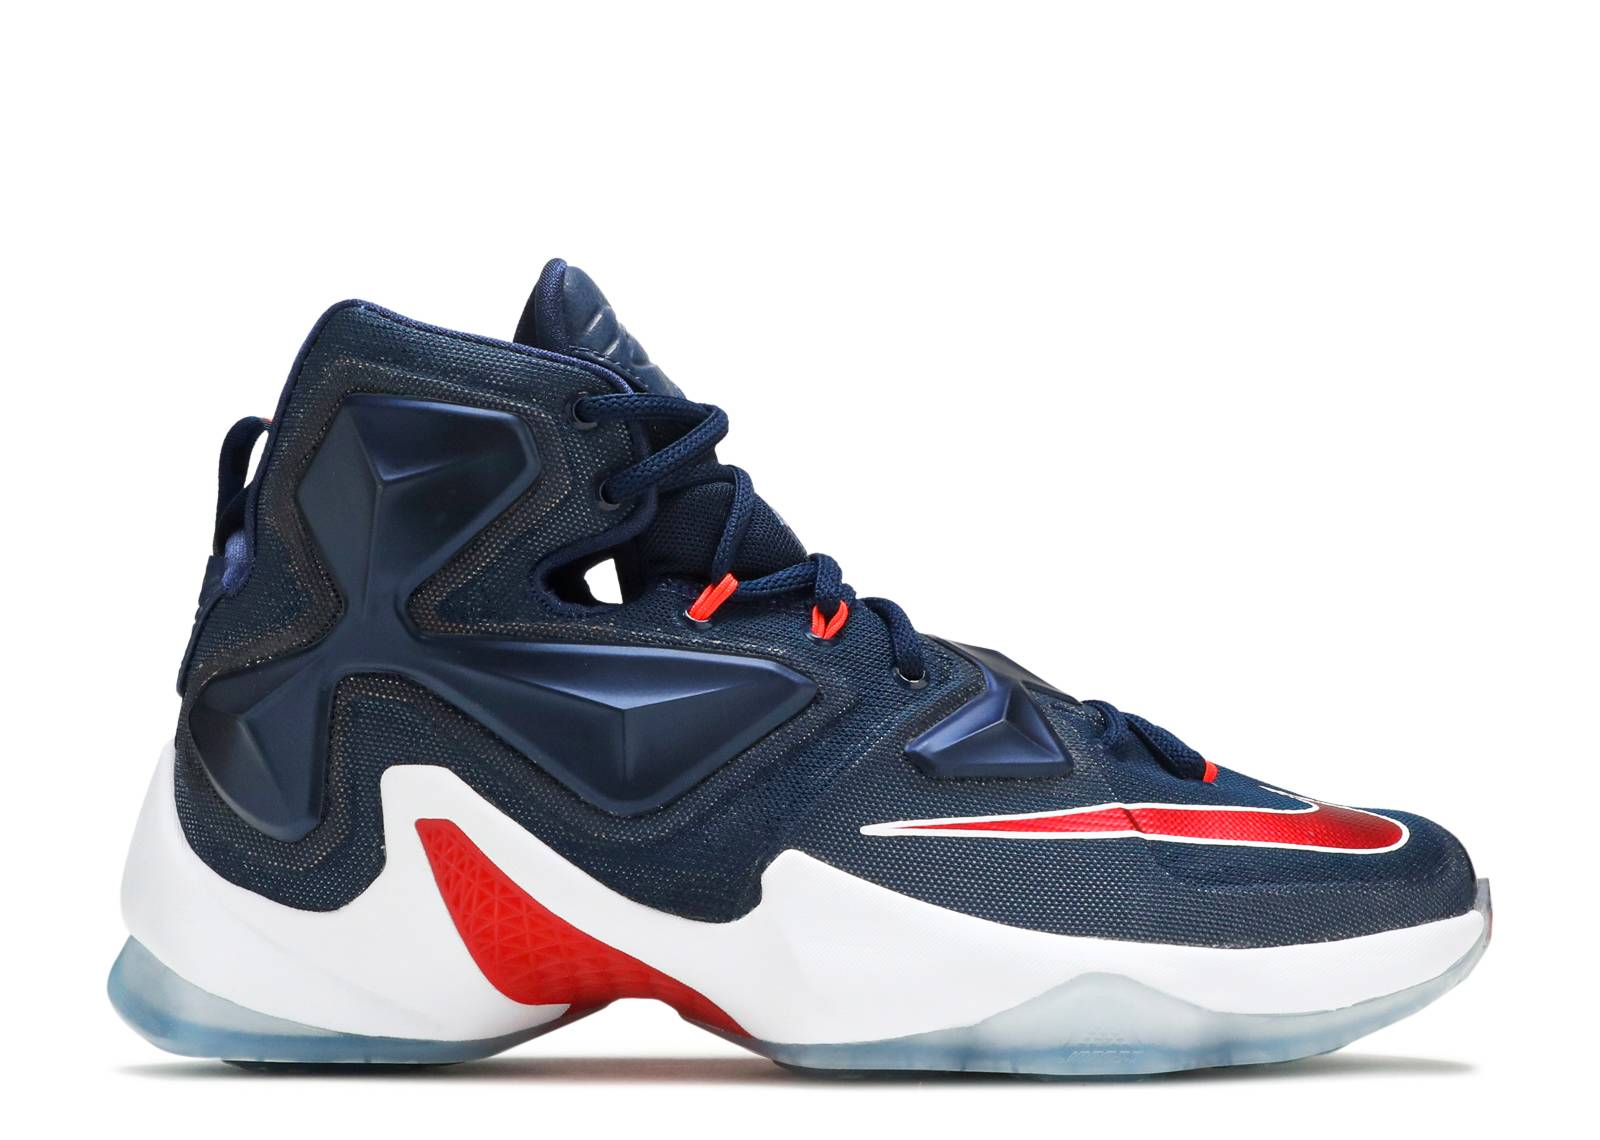 innovative design 43199 72ac6 ... sale lebron 13 usa nike 807219 461 mid nvy unvrsty rd white bright  flight club fa79f